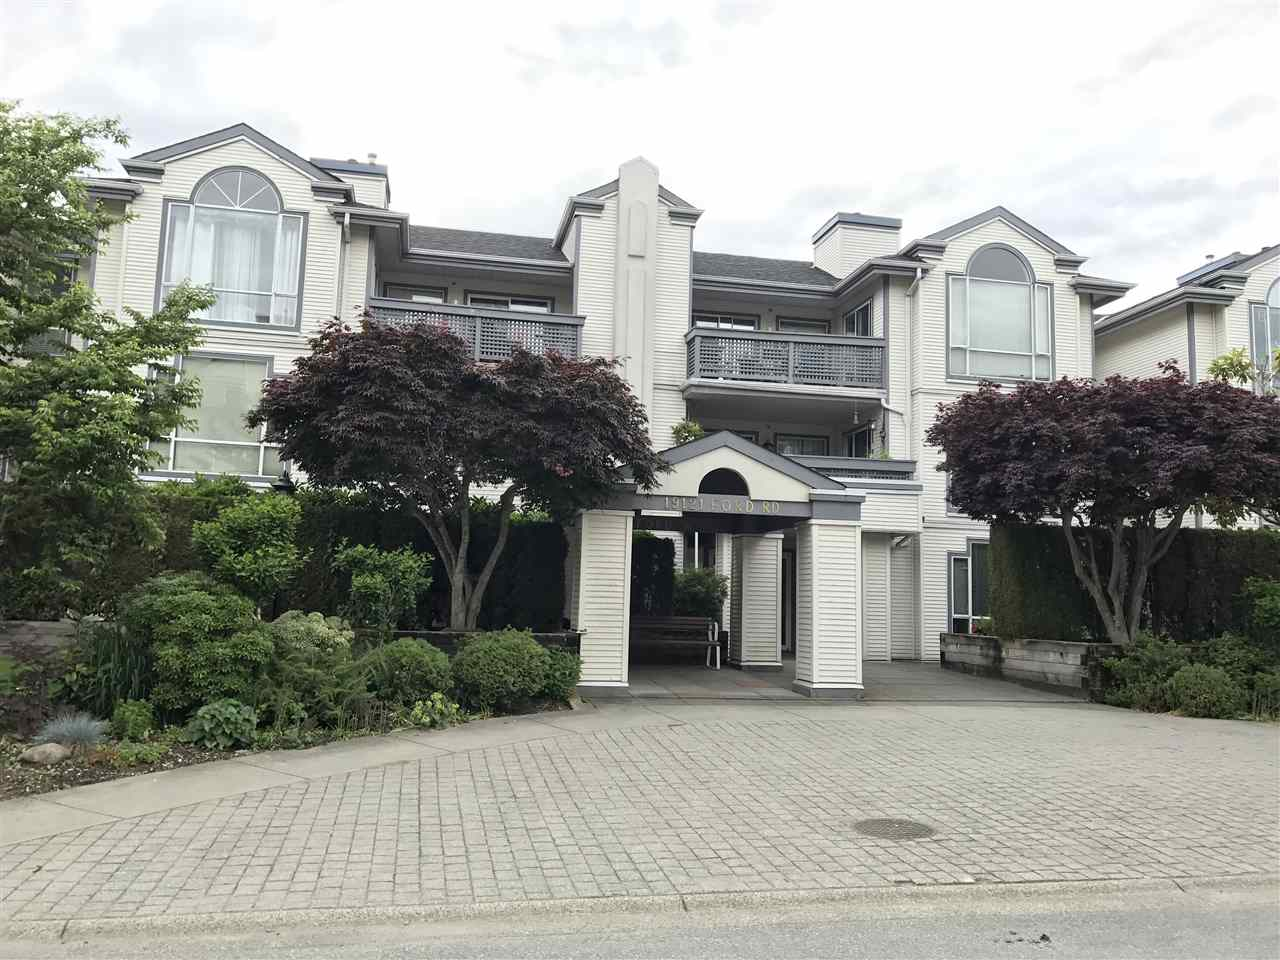 Main Photo: 304 19121 FORD Road in Pitt Meadows: Central Meadows Condo for sale : MLS(r) # R2177772